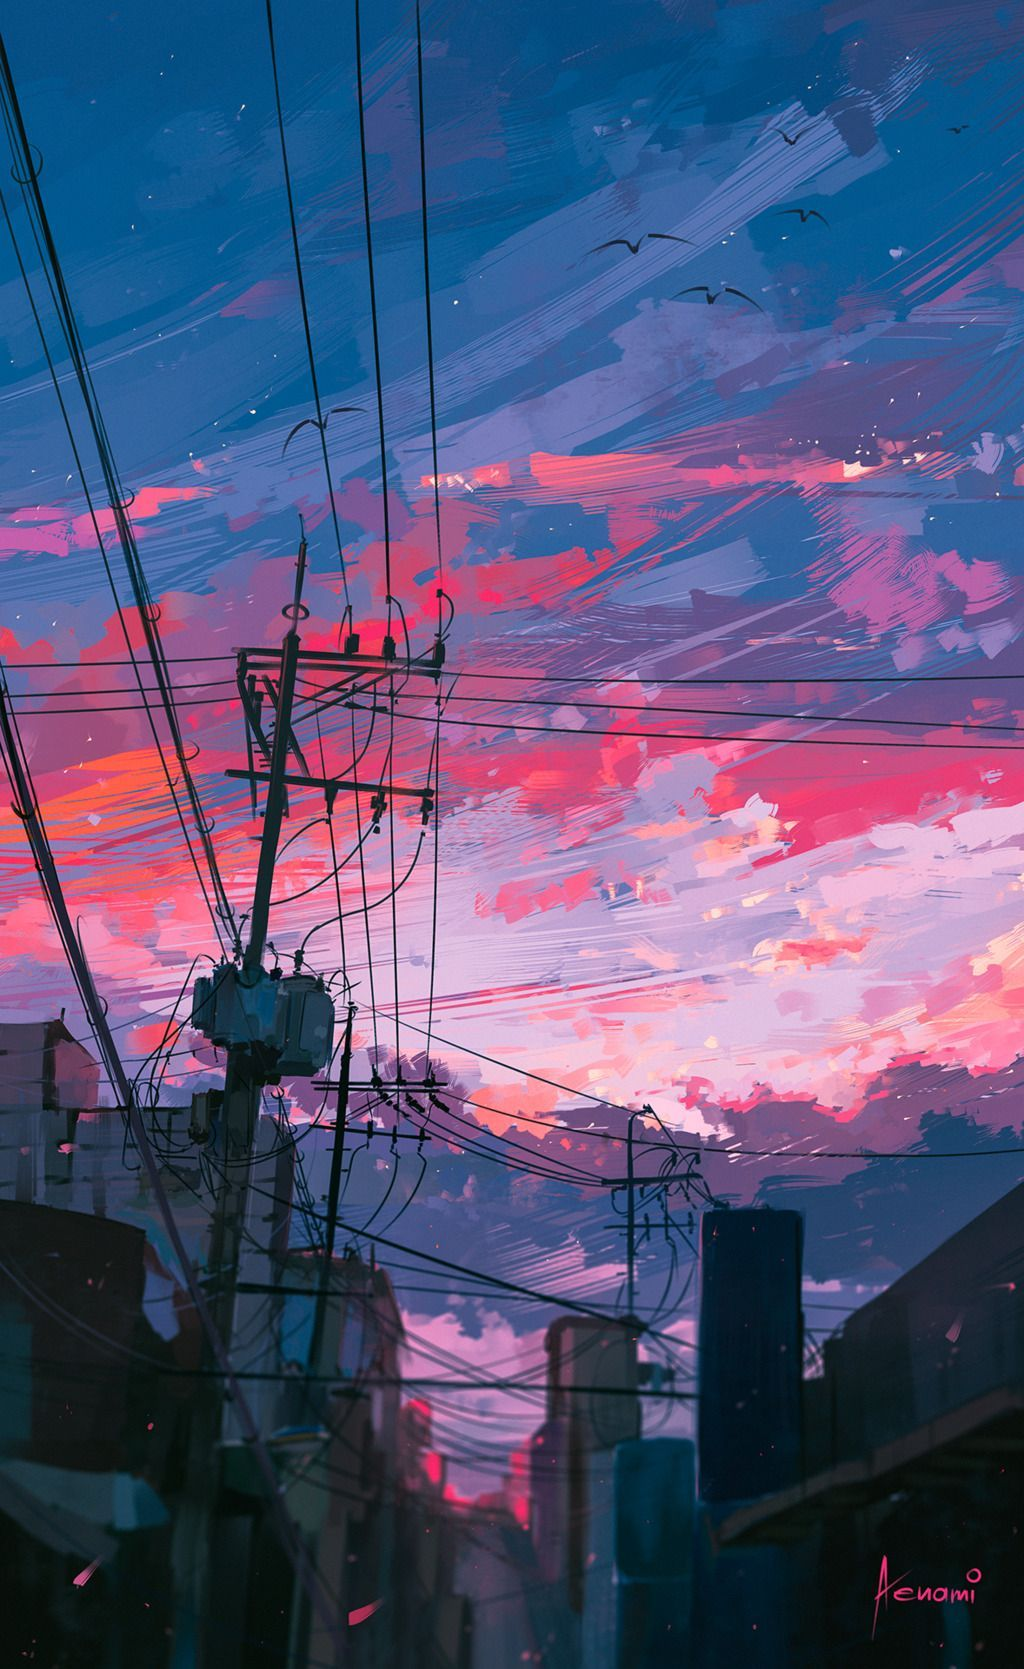 download Lo Fi Aesthetic Anime Wallpapers Top Lo Fi Aesthetic 1024x1669